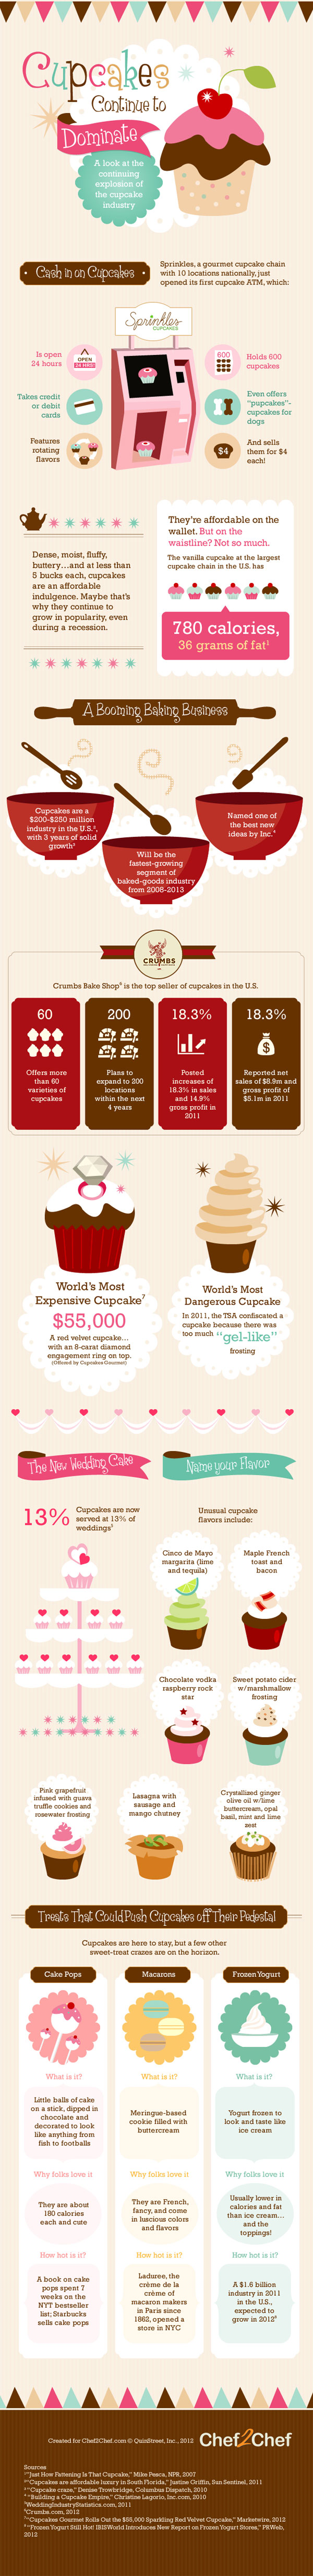 Cupcake Industry Trends and Statistics 55 Catchy Bakery Slogans and Great Taglines